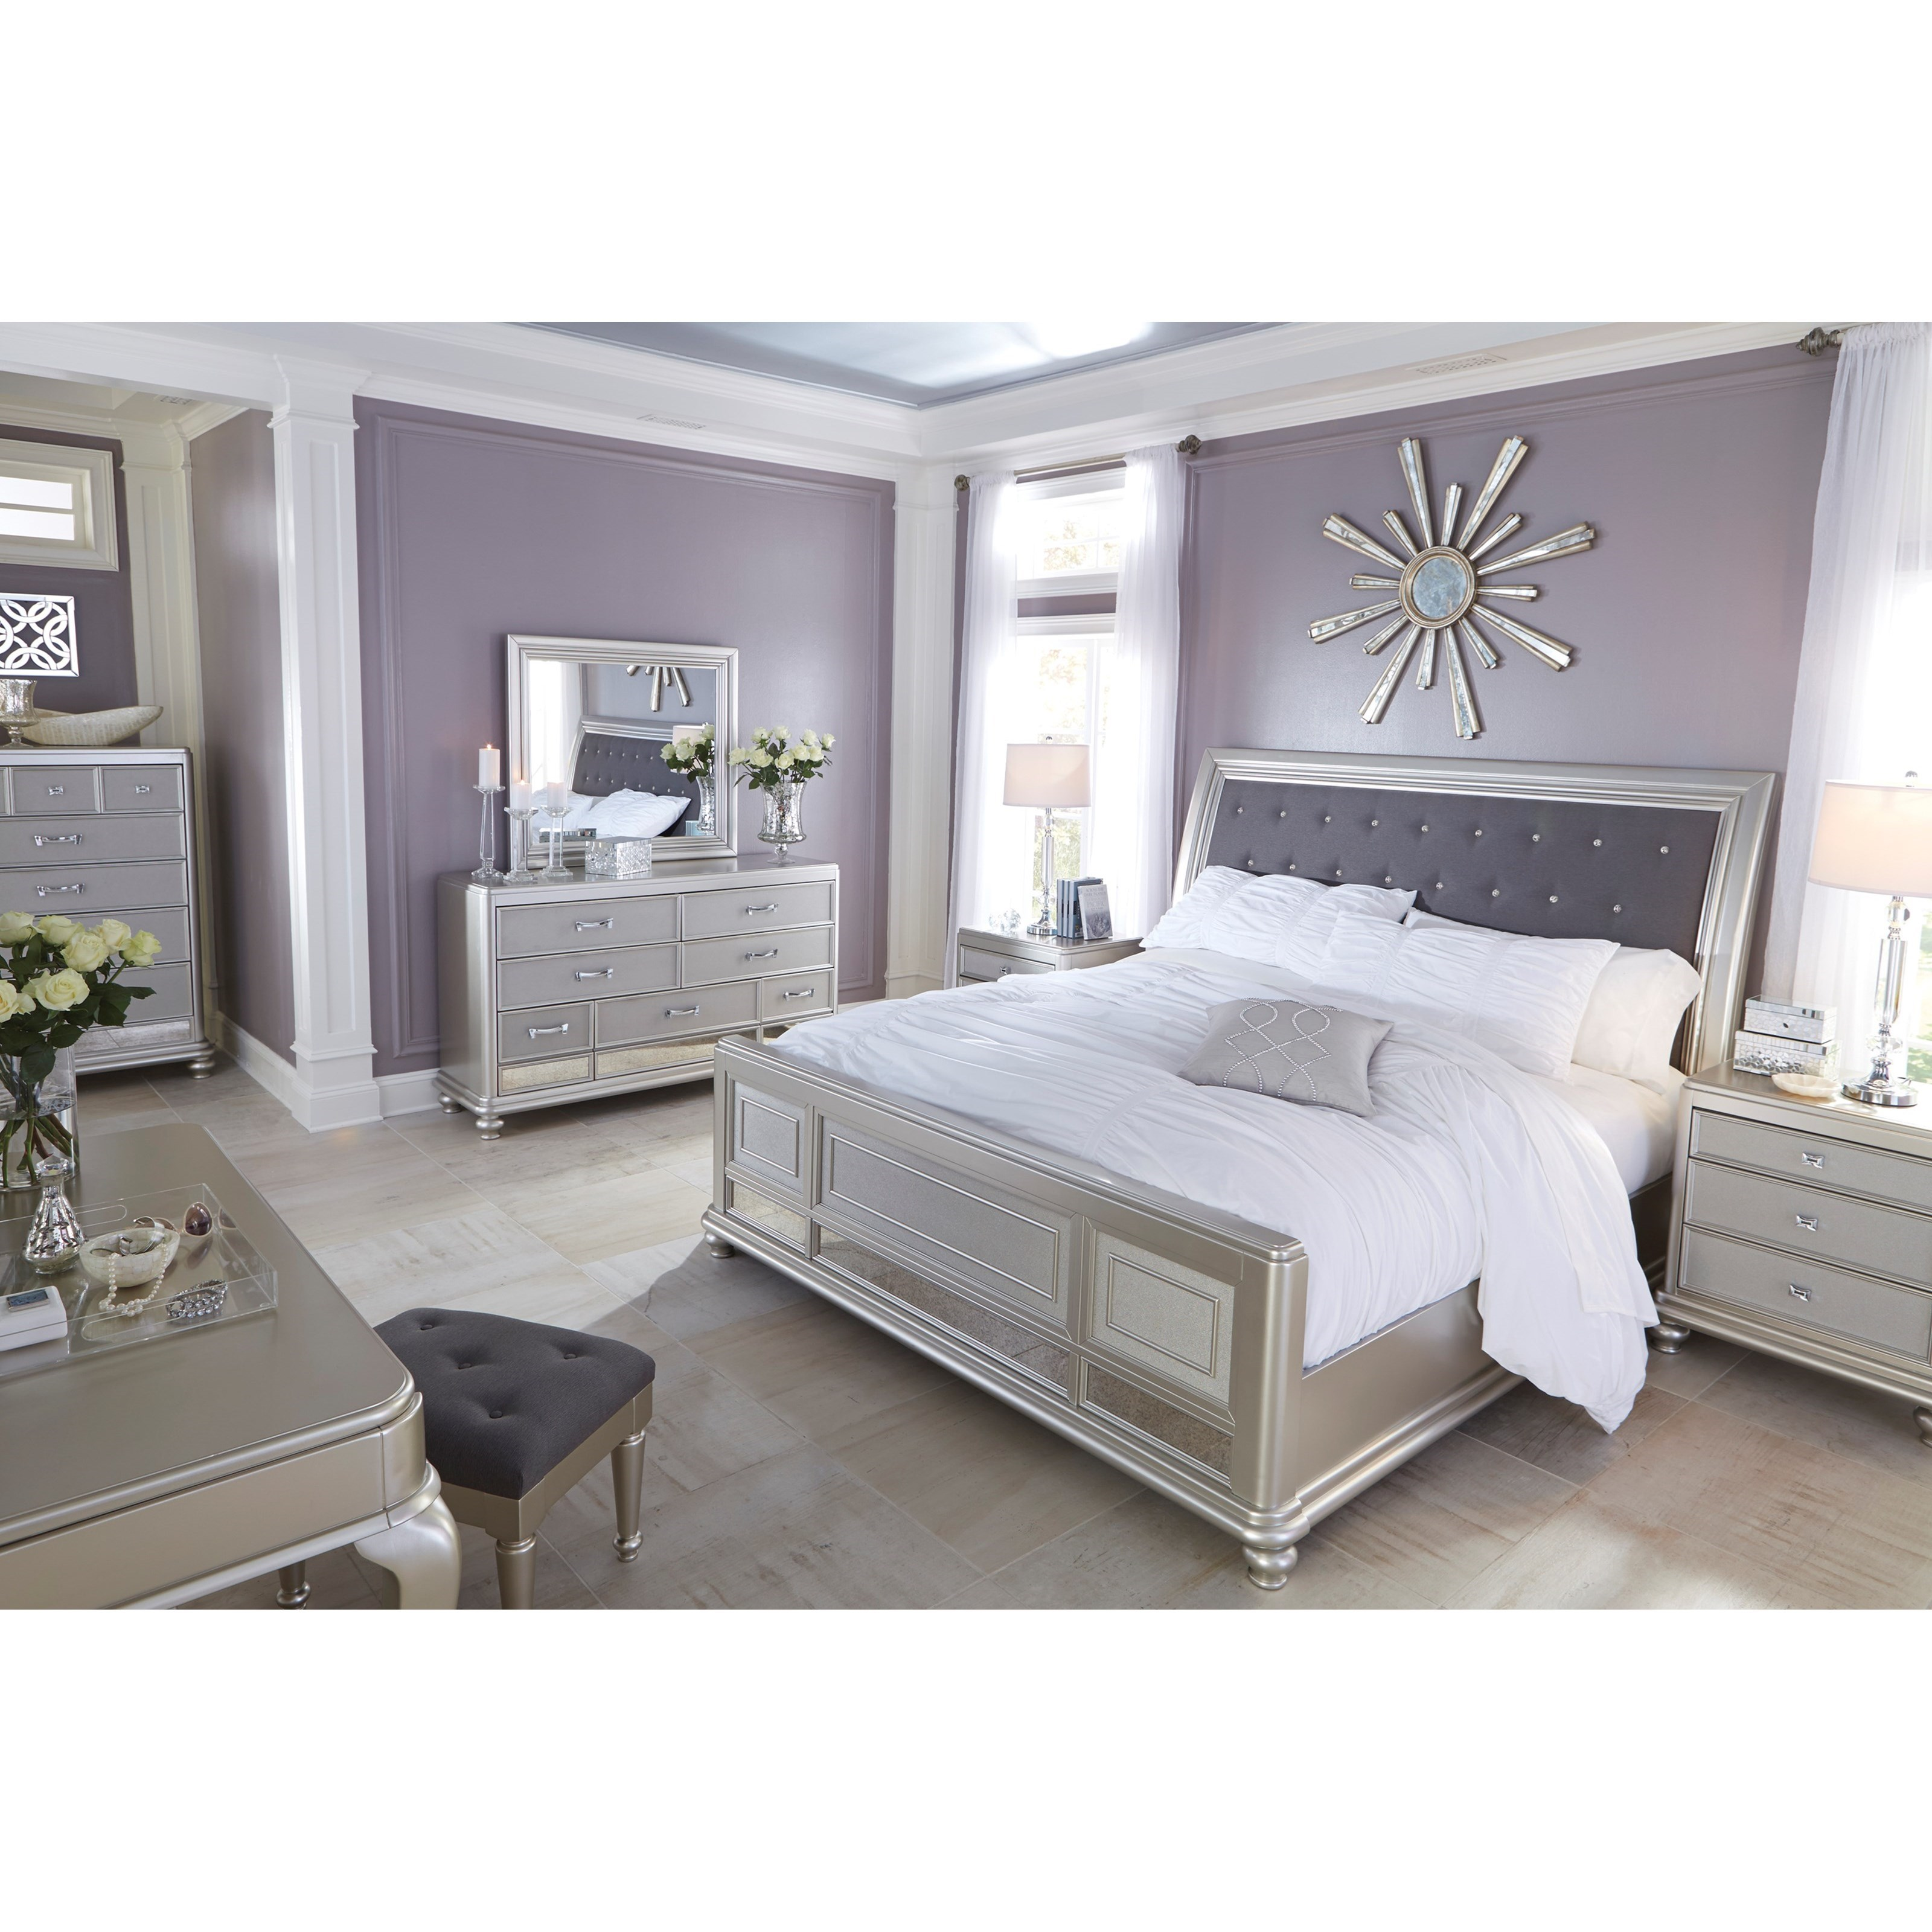 Signature Design By Ashley Coralayne Queen Bed With Upholstered Sleigh Headboard And Silver